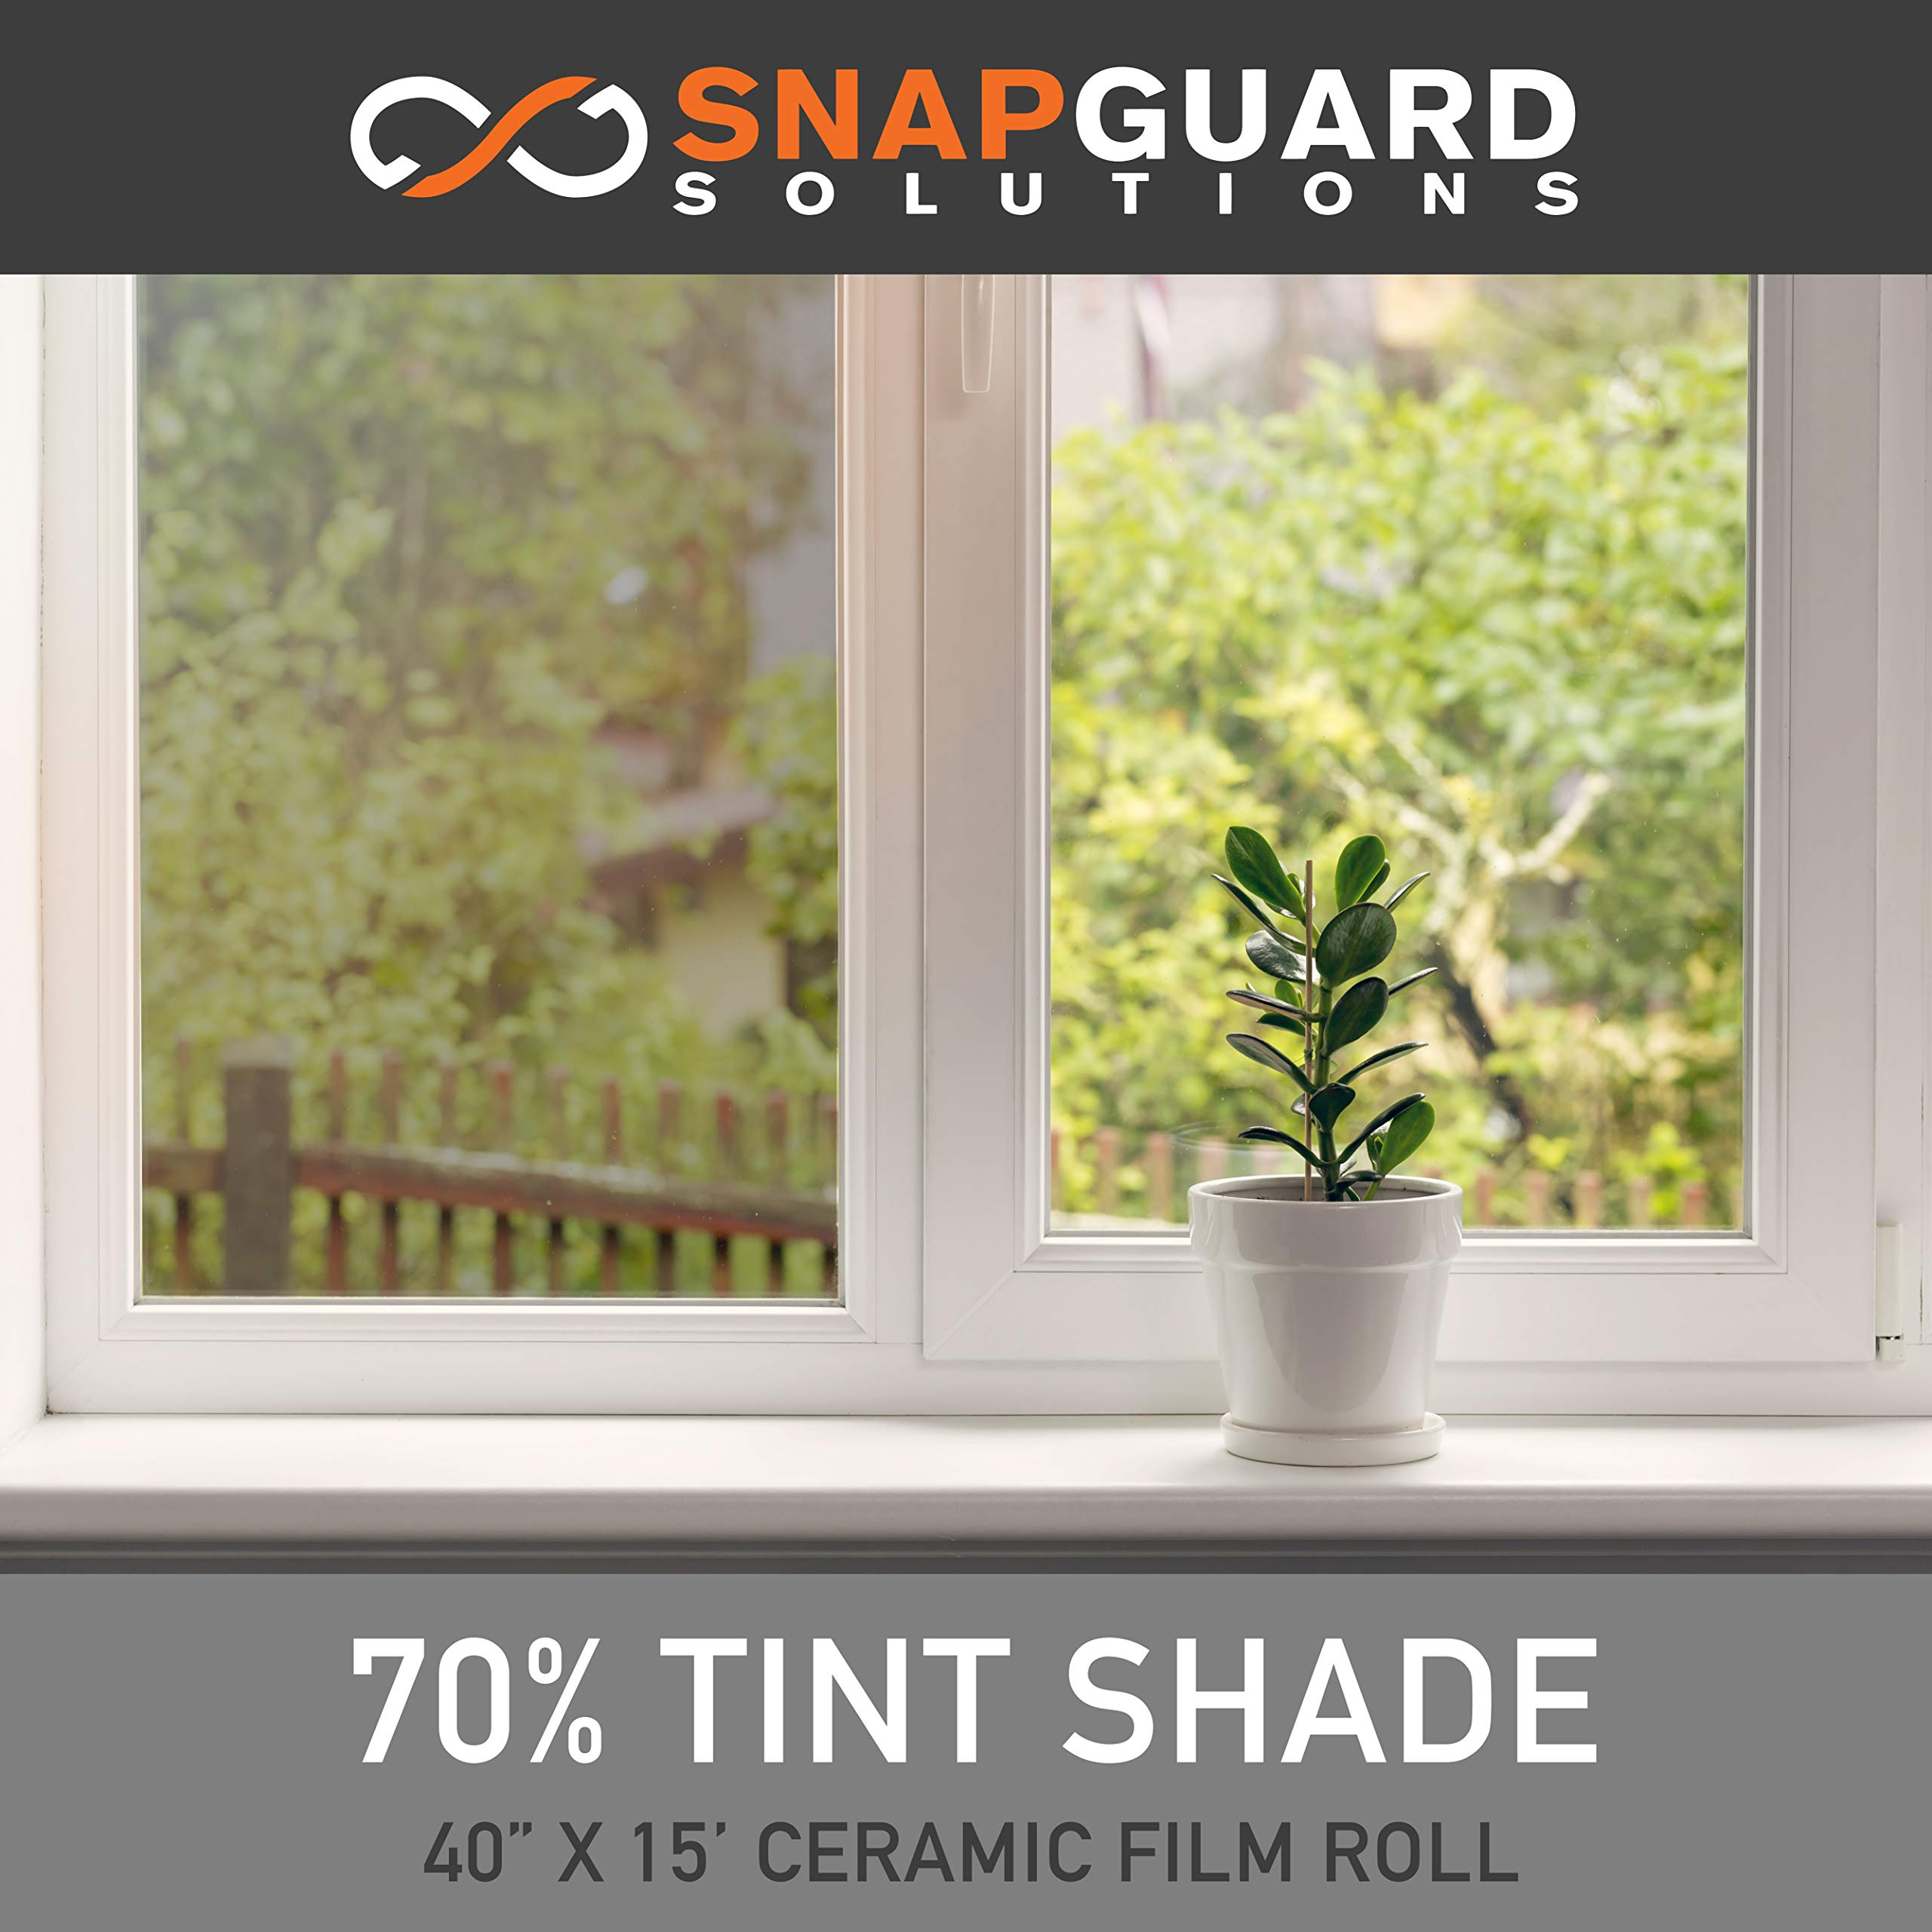 Snapguard Solutions - Ceramic Tint Film, Window Tint for Home (Blocks Up to 99% of UV/IRR Rays) 40'' x 15' Roll (70%) by Snapguard Solutions